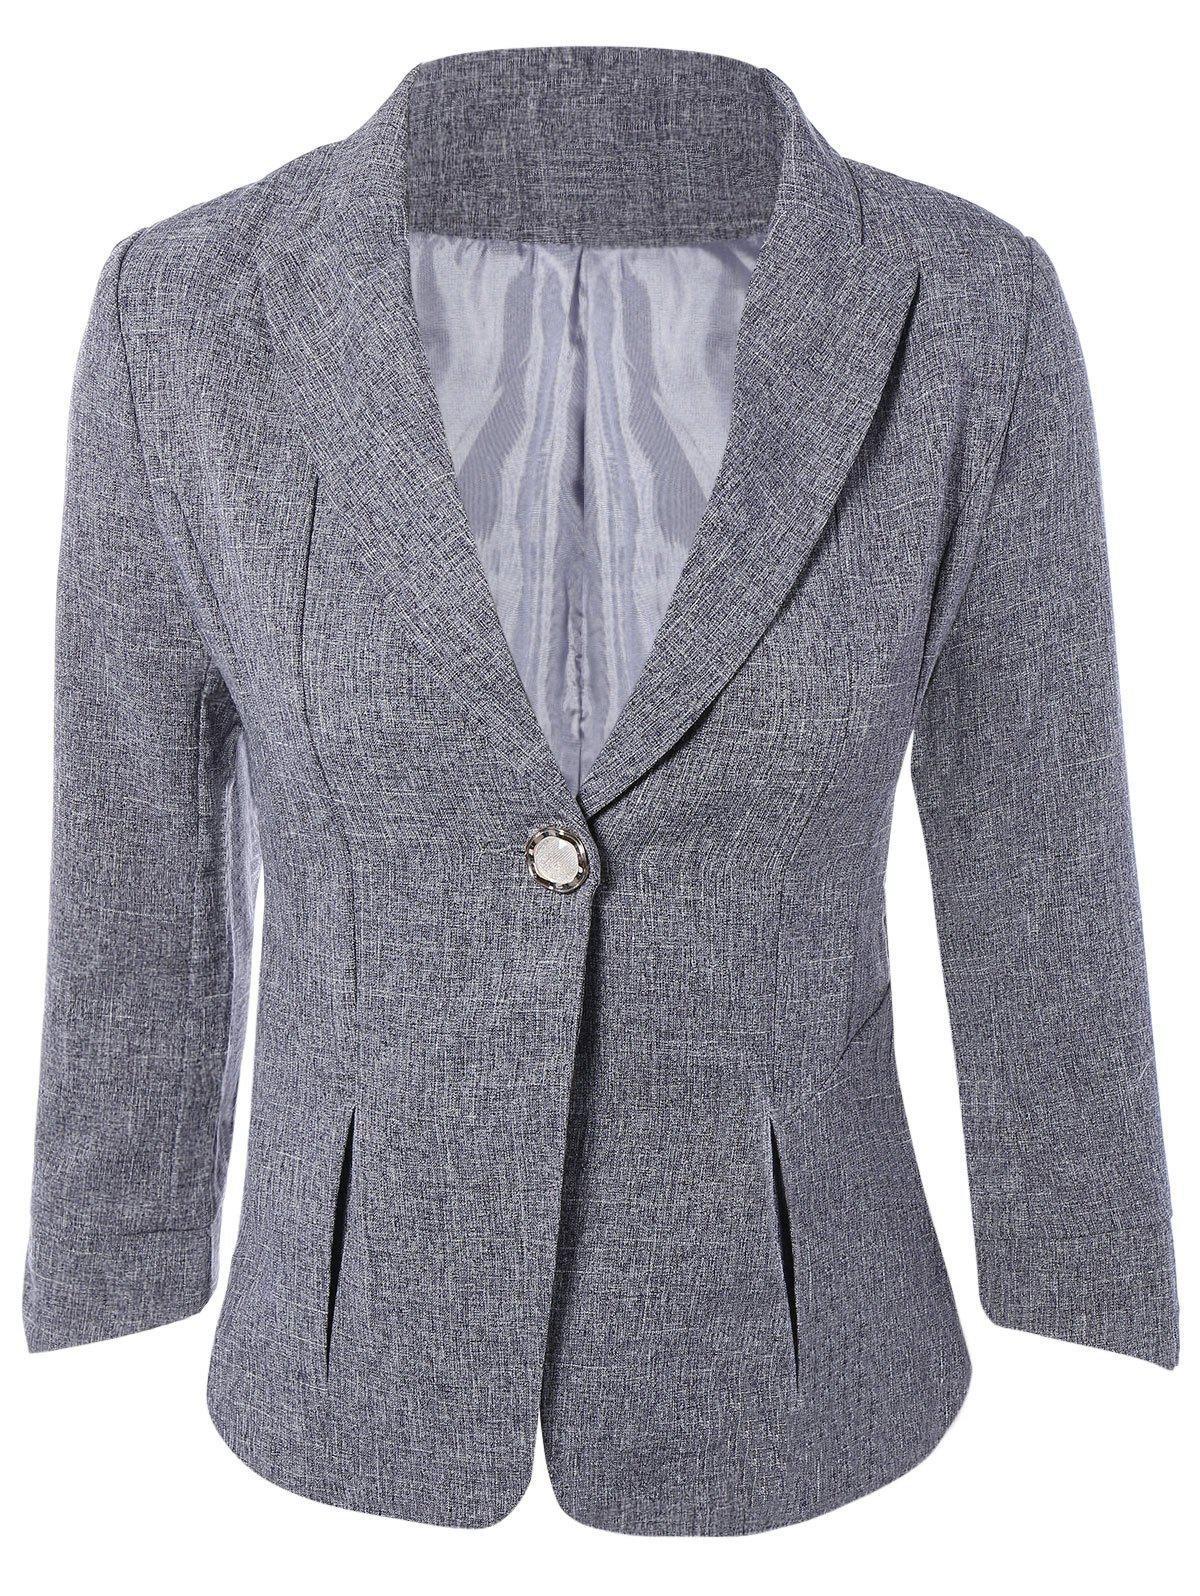 3/4 Sleeve One Button Short Jacket Blazer - GRAY L